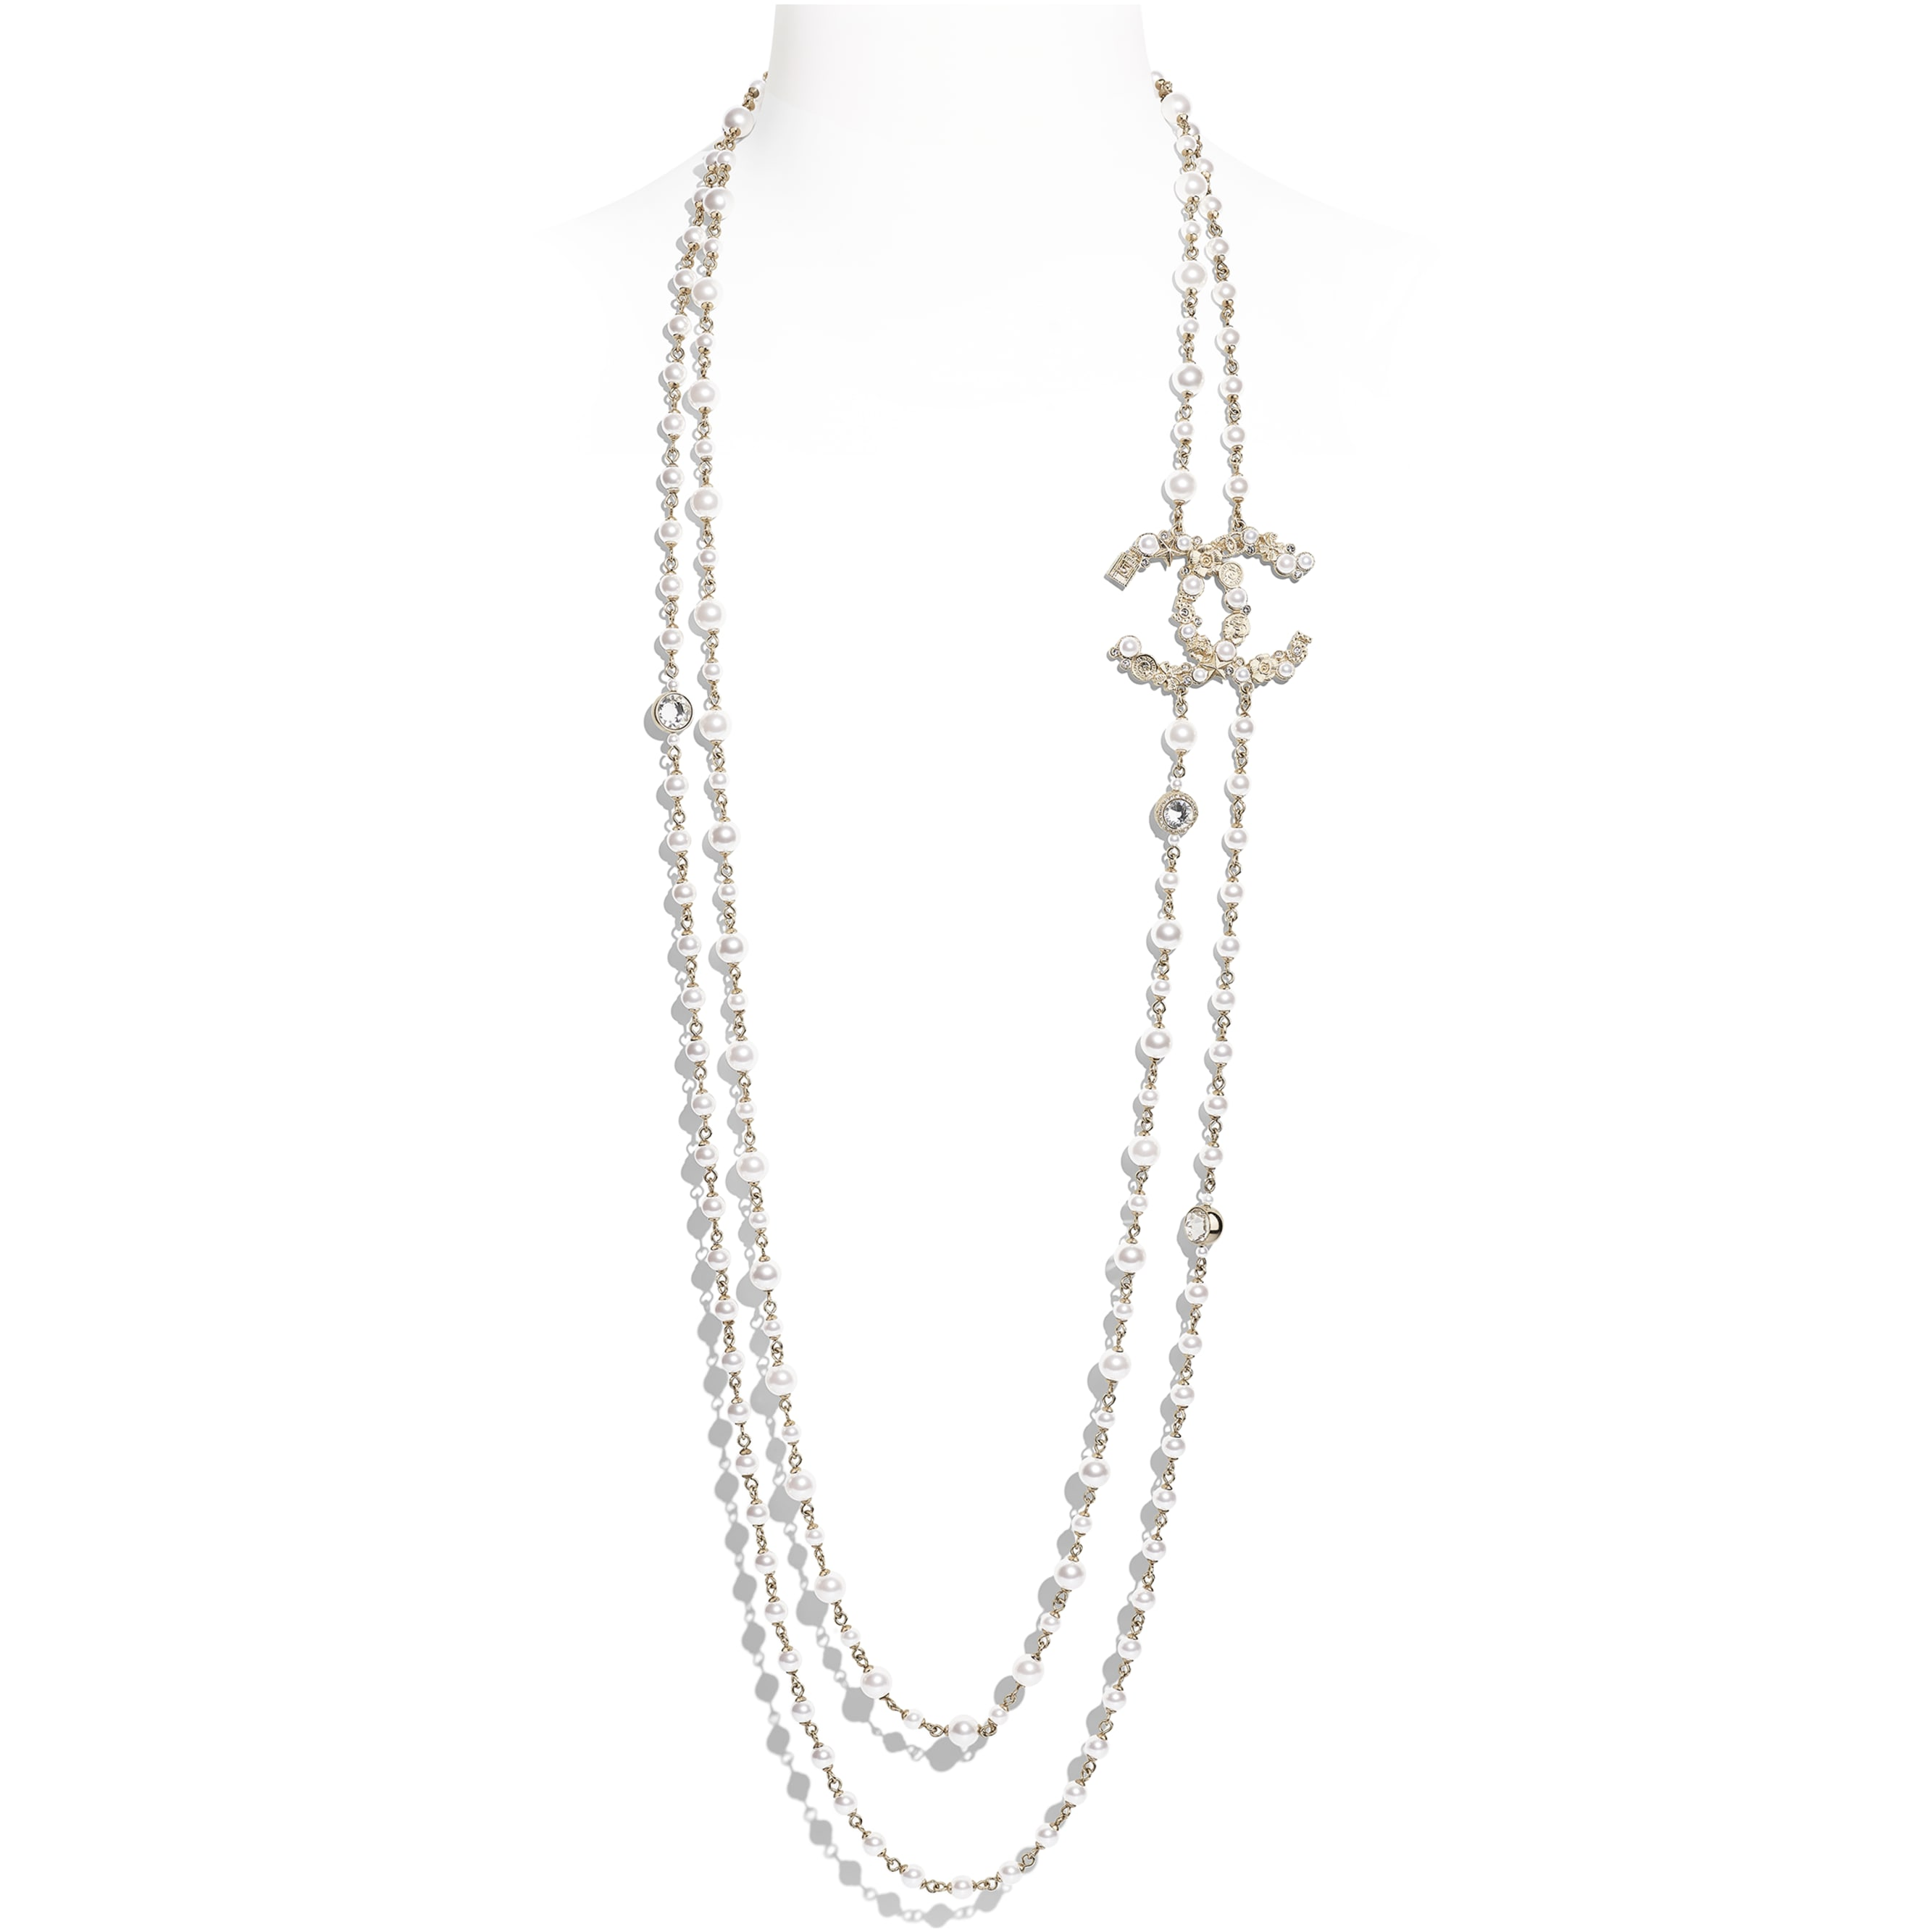 Long Necklace - Gold, Pearly White & Crystal - Metal, Glass Pearls, Imitation Pearls & Strass - CHANEL - Default view - see standard sized version